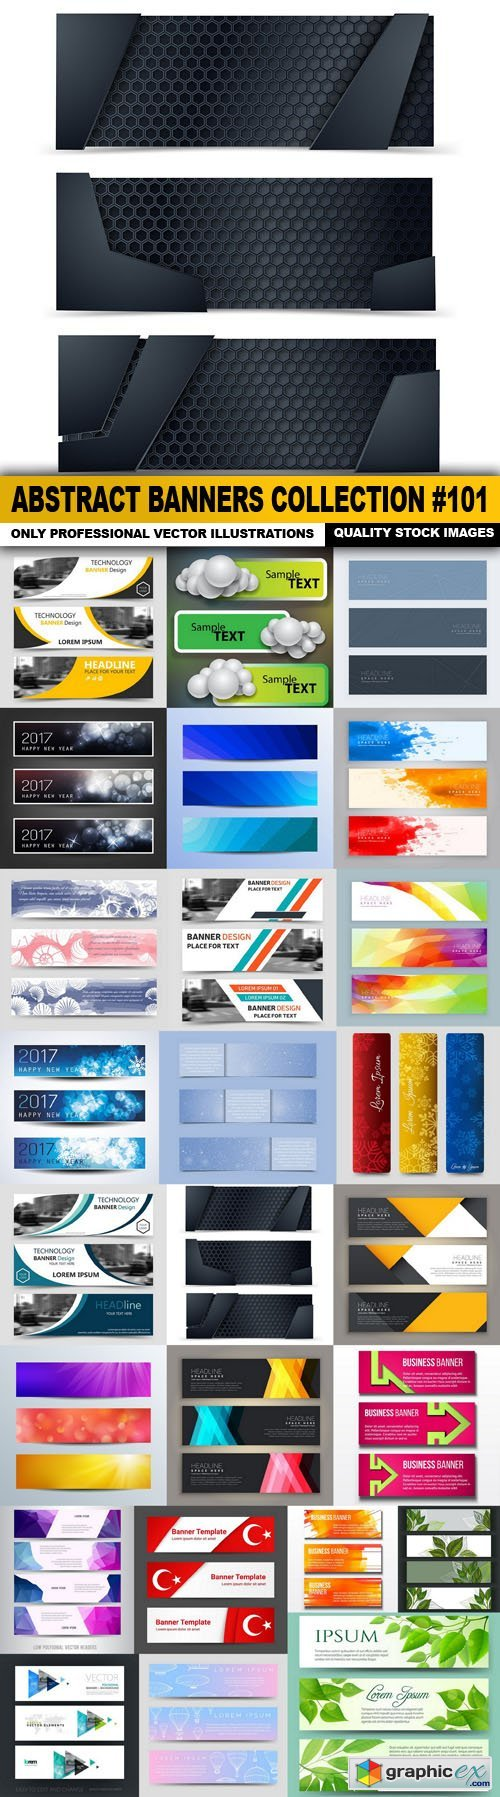 Abstract Banners Collection #101 - 25 Vectors